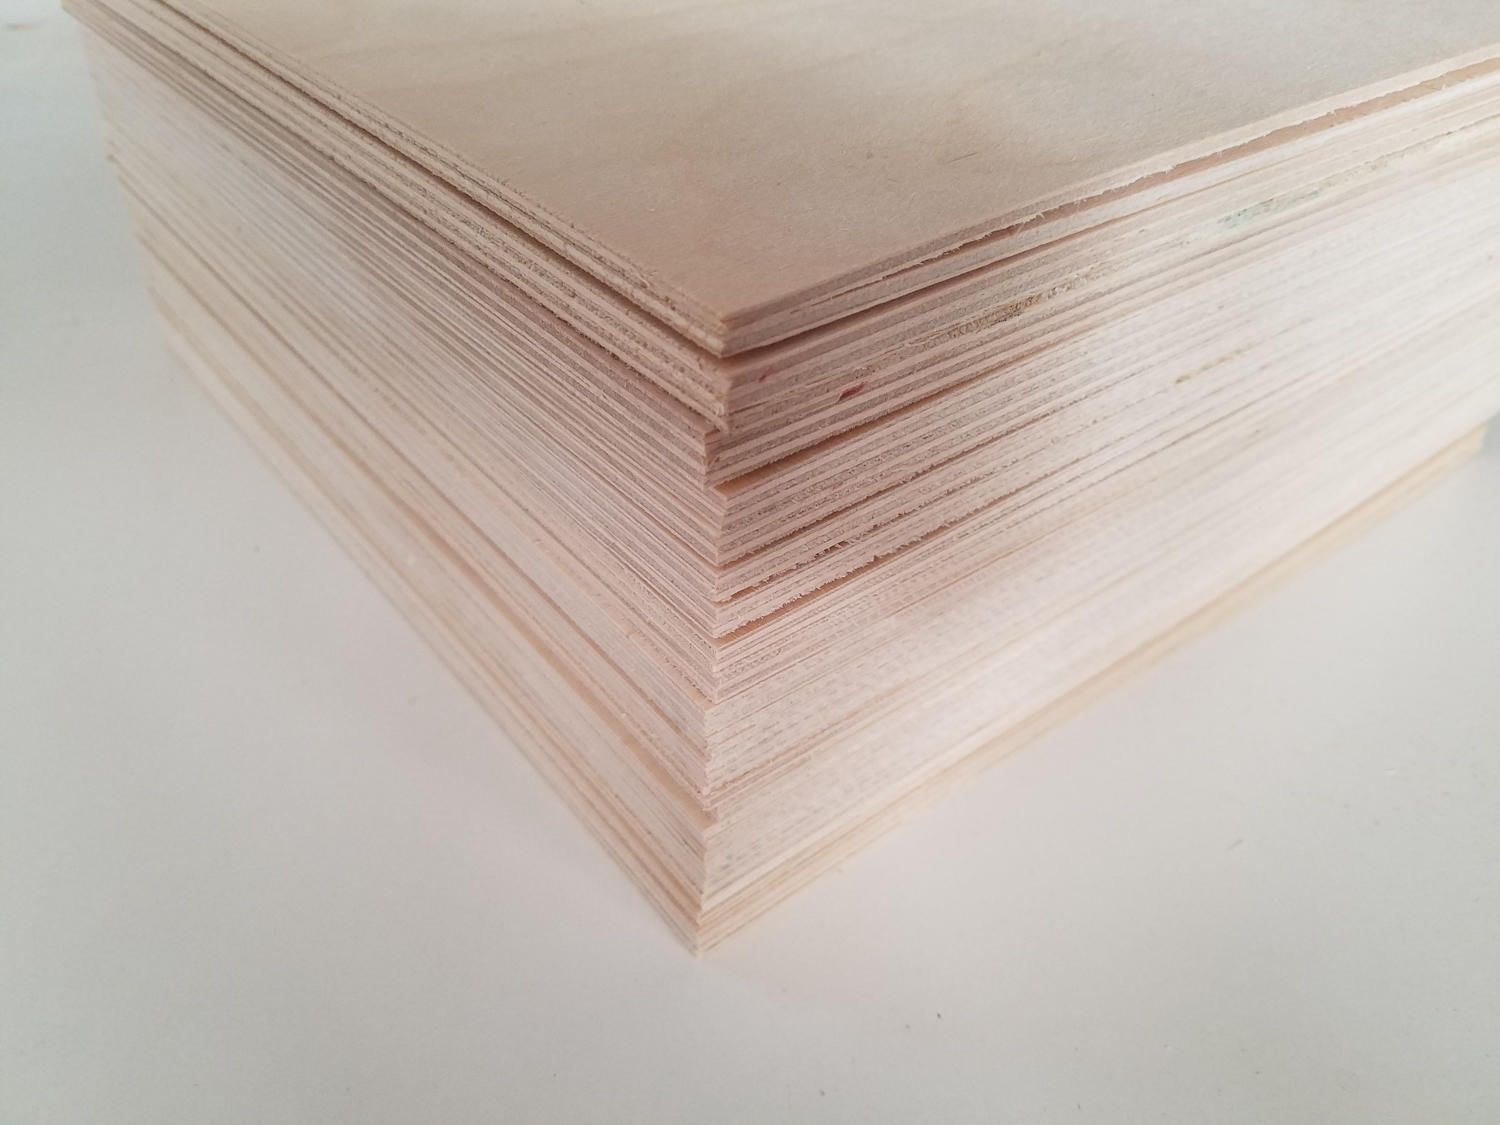 1 8 Birch 6x12 48 Sheets Baltic Birch Plywood 3mm By Americanlasersupply On Etsy Baltic Birch Plywood Laser Wood Bir Baltic Birch Plywood Birch Plywood Wood